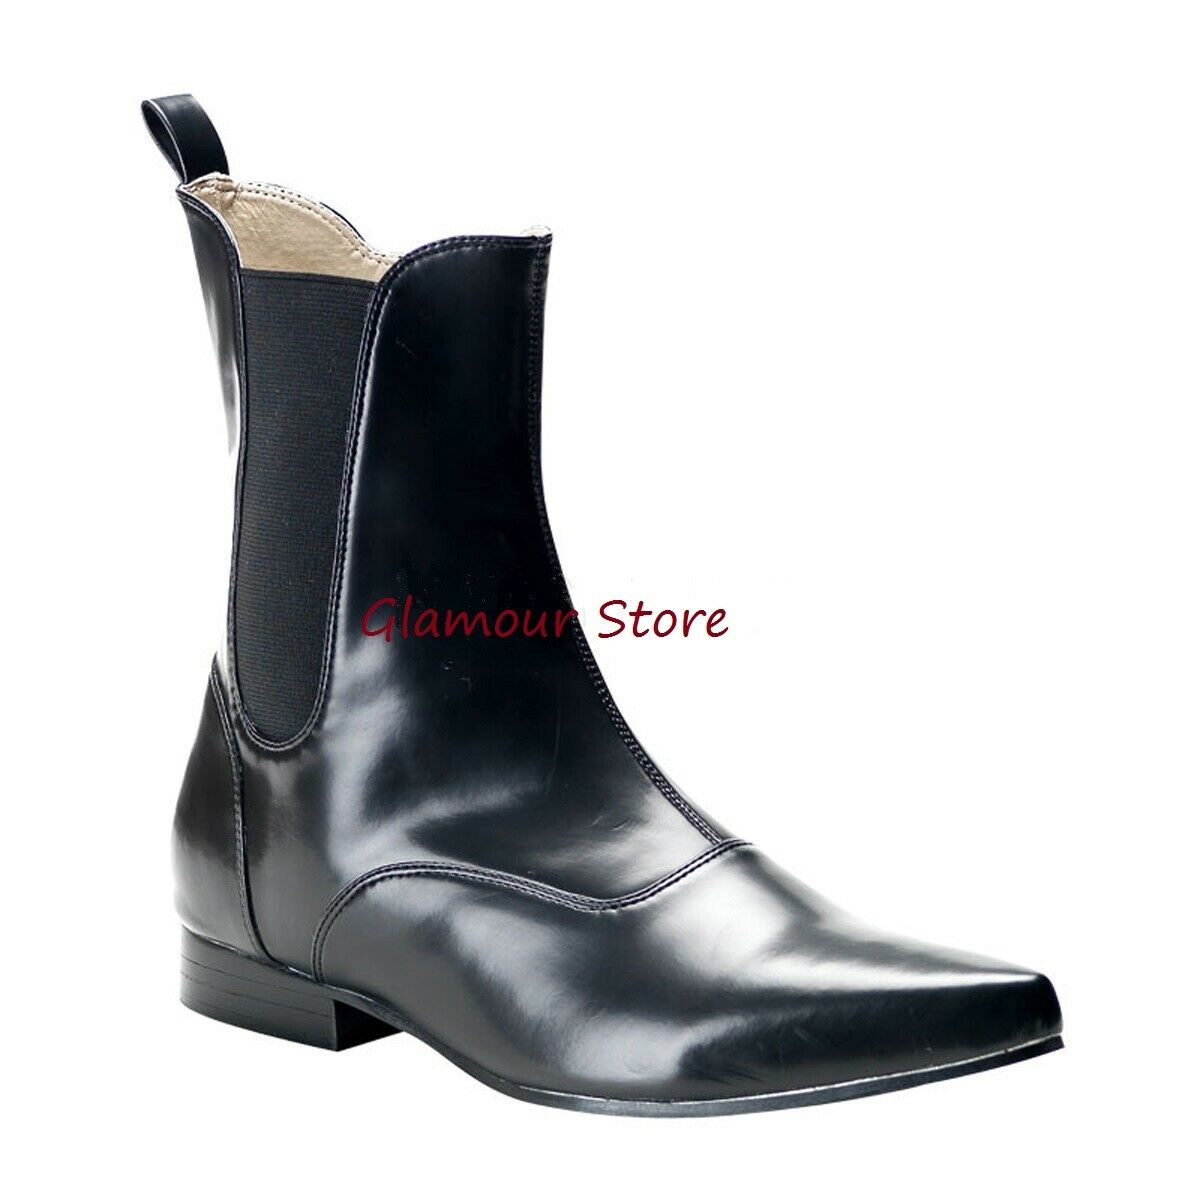 Boots man numbers 41 -42 Matte Black Heel 2,5 cm Rock Boots Fashion